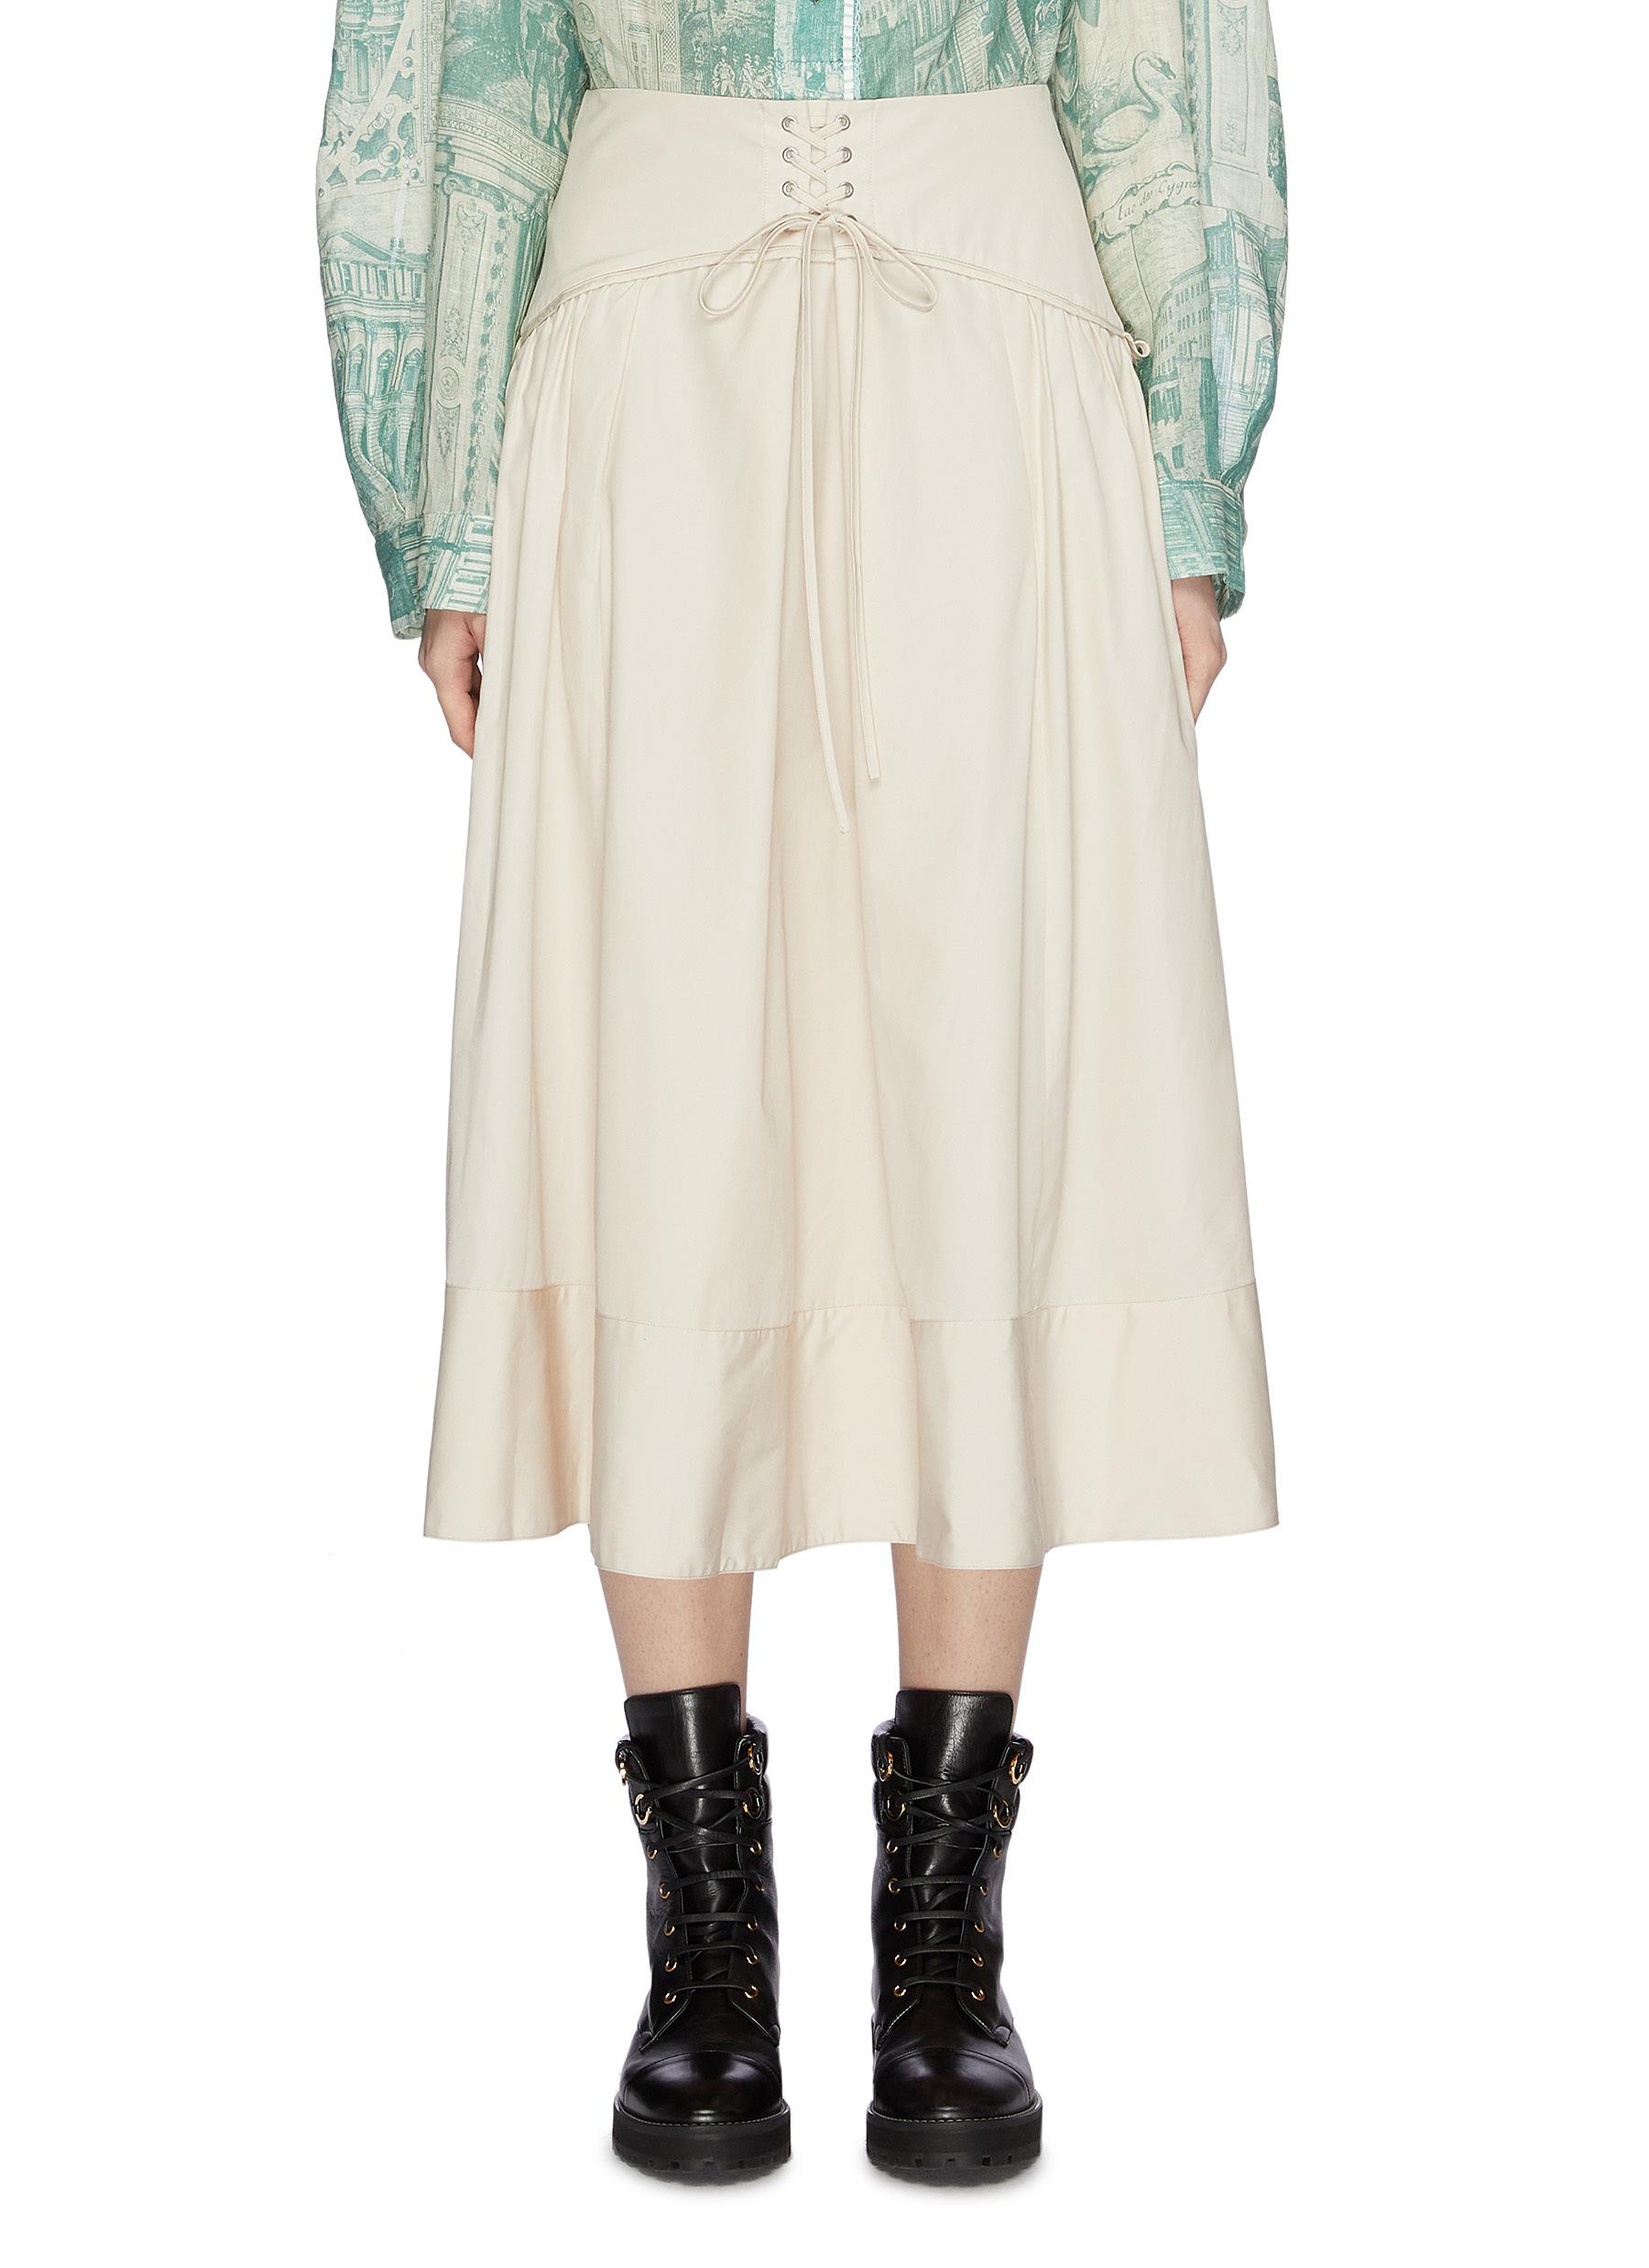 Lace-up corset waist flared poplin skirt by 3.1 Phillip Lim